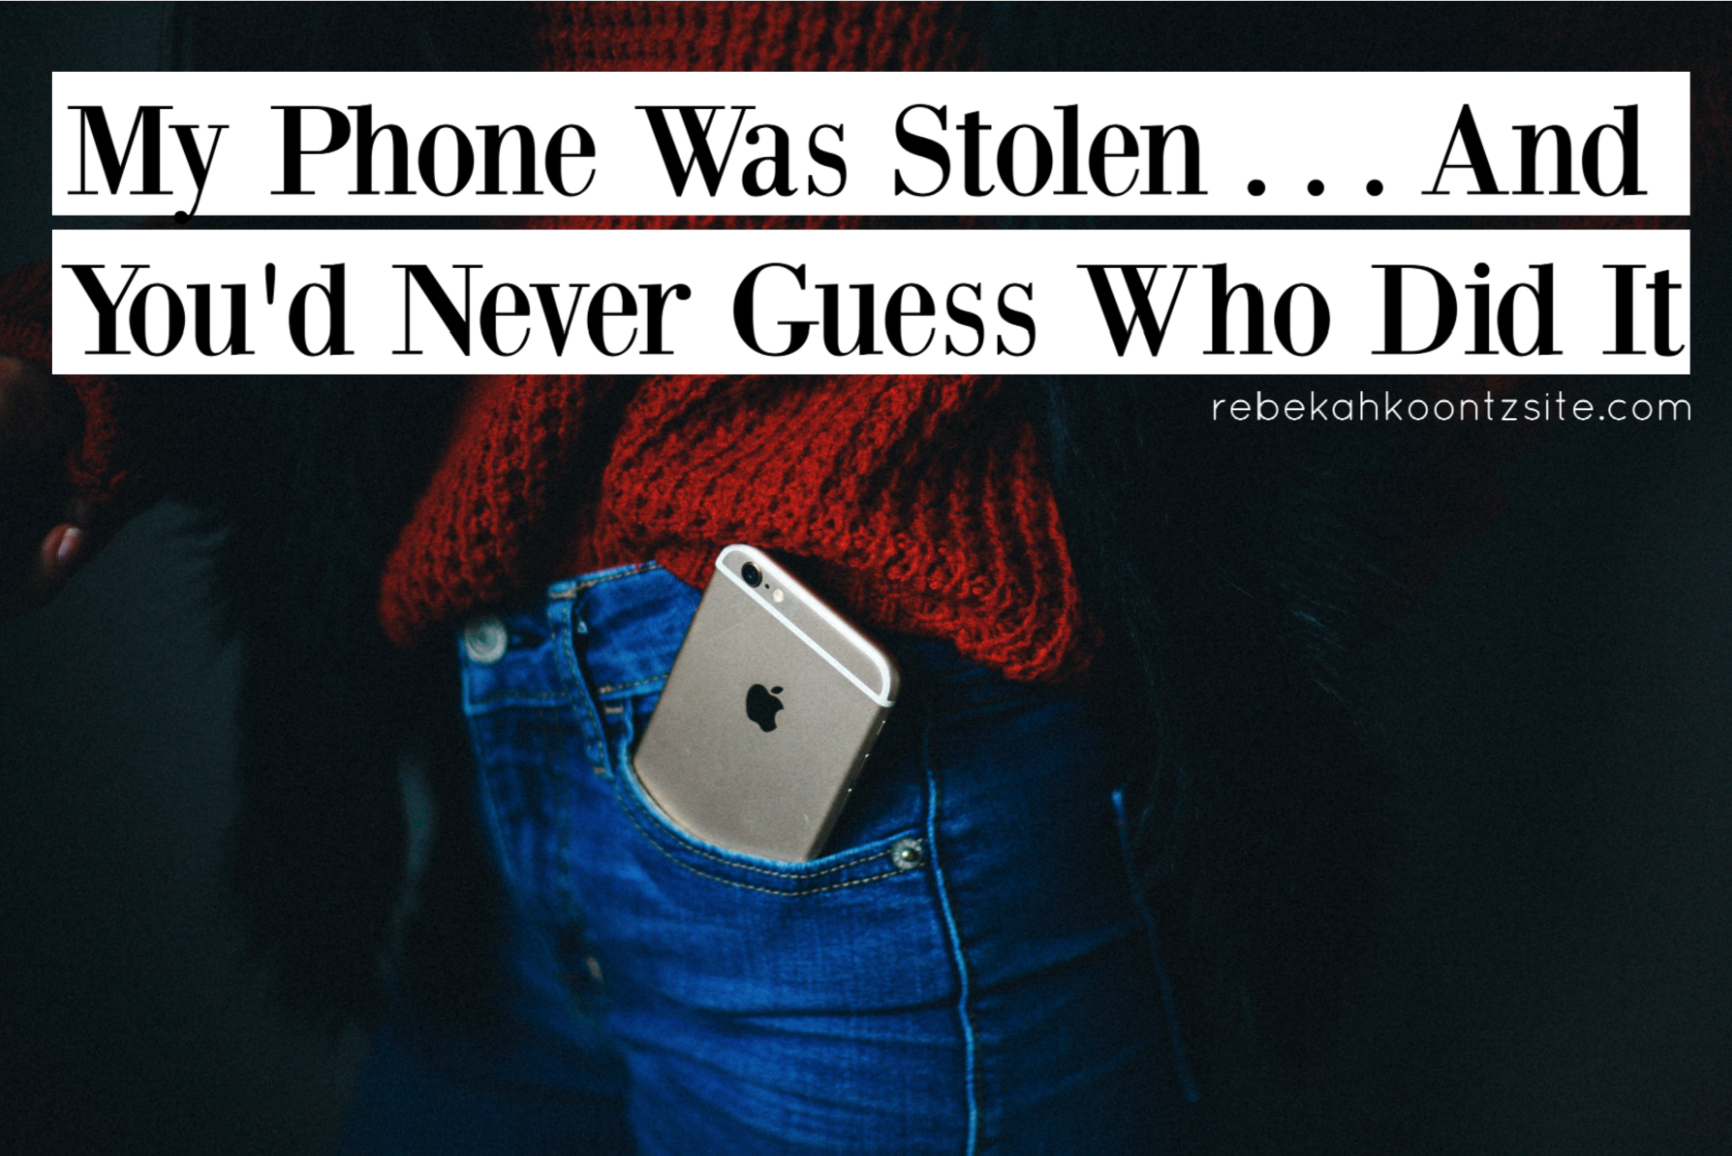 My phone was stolen lifestyle true story rebekah koontz rebecca counts